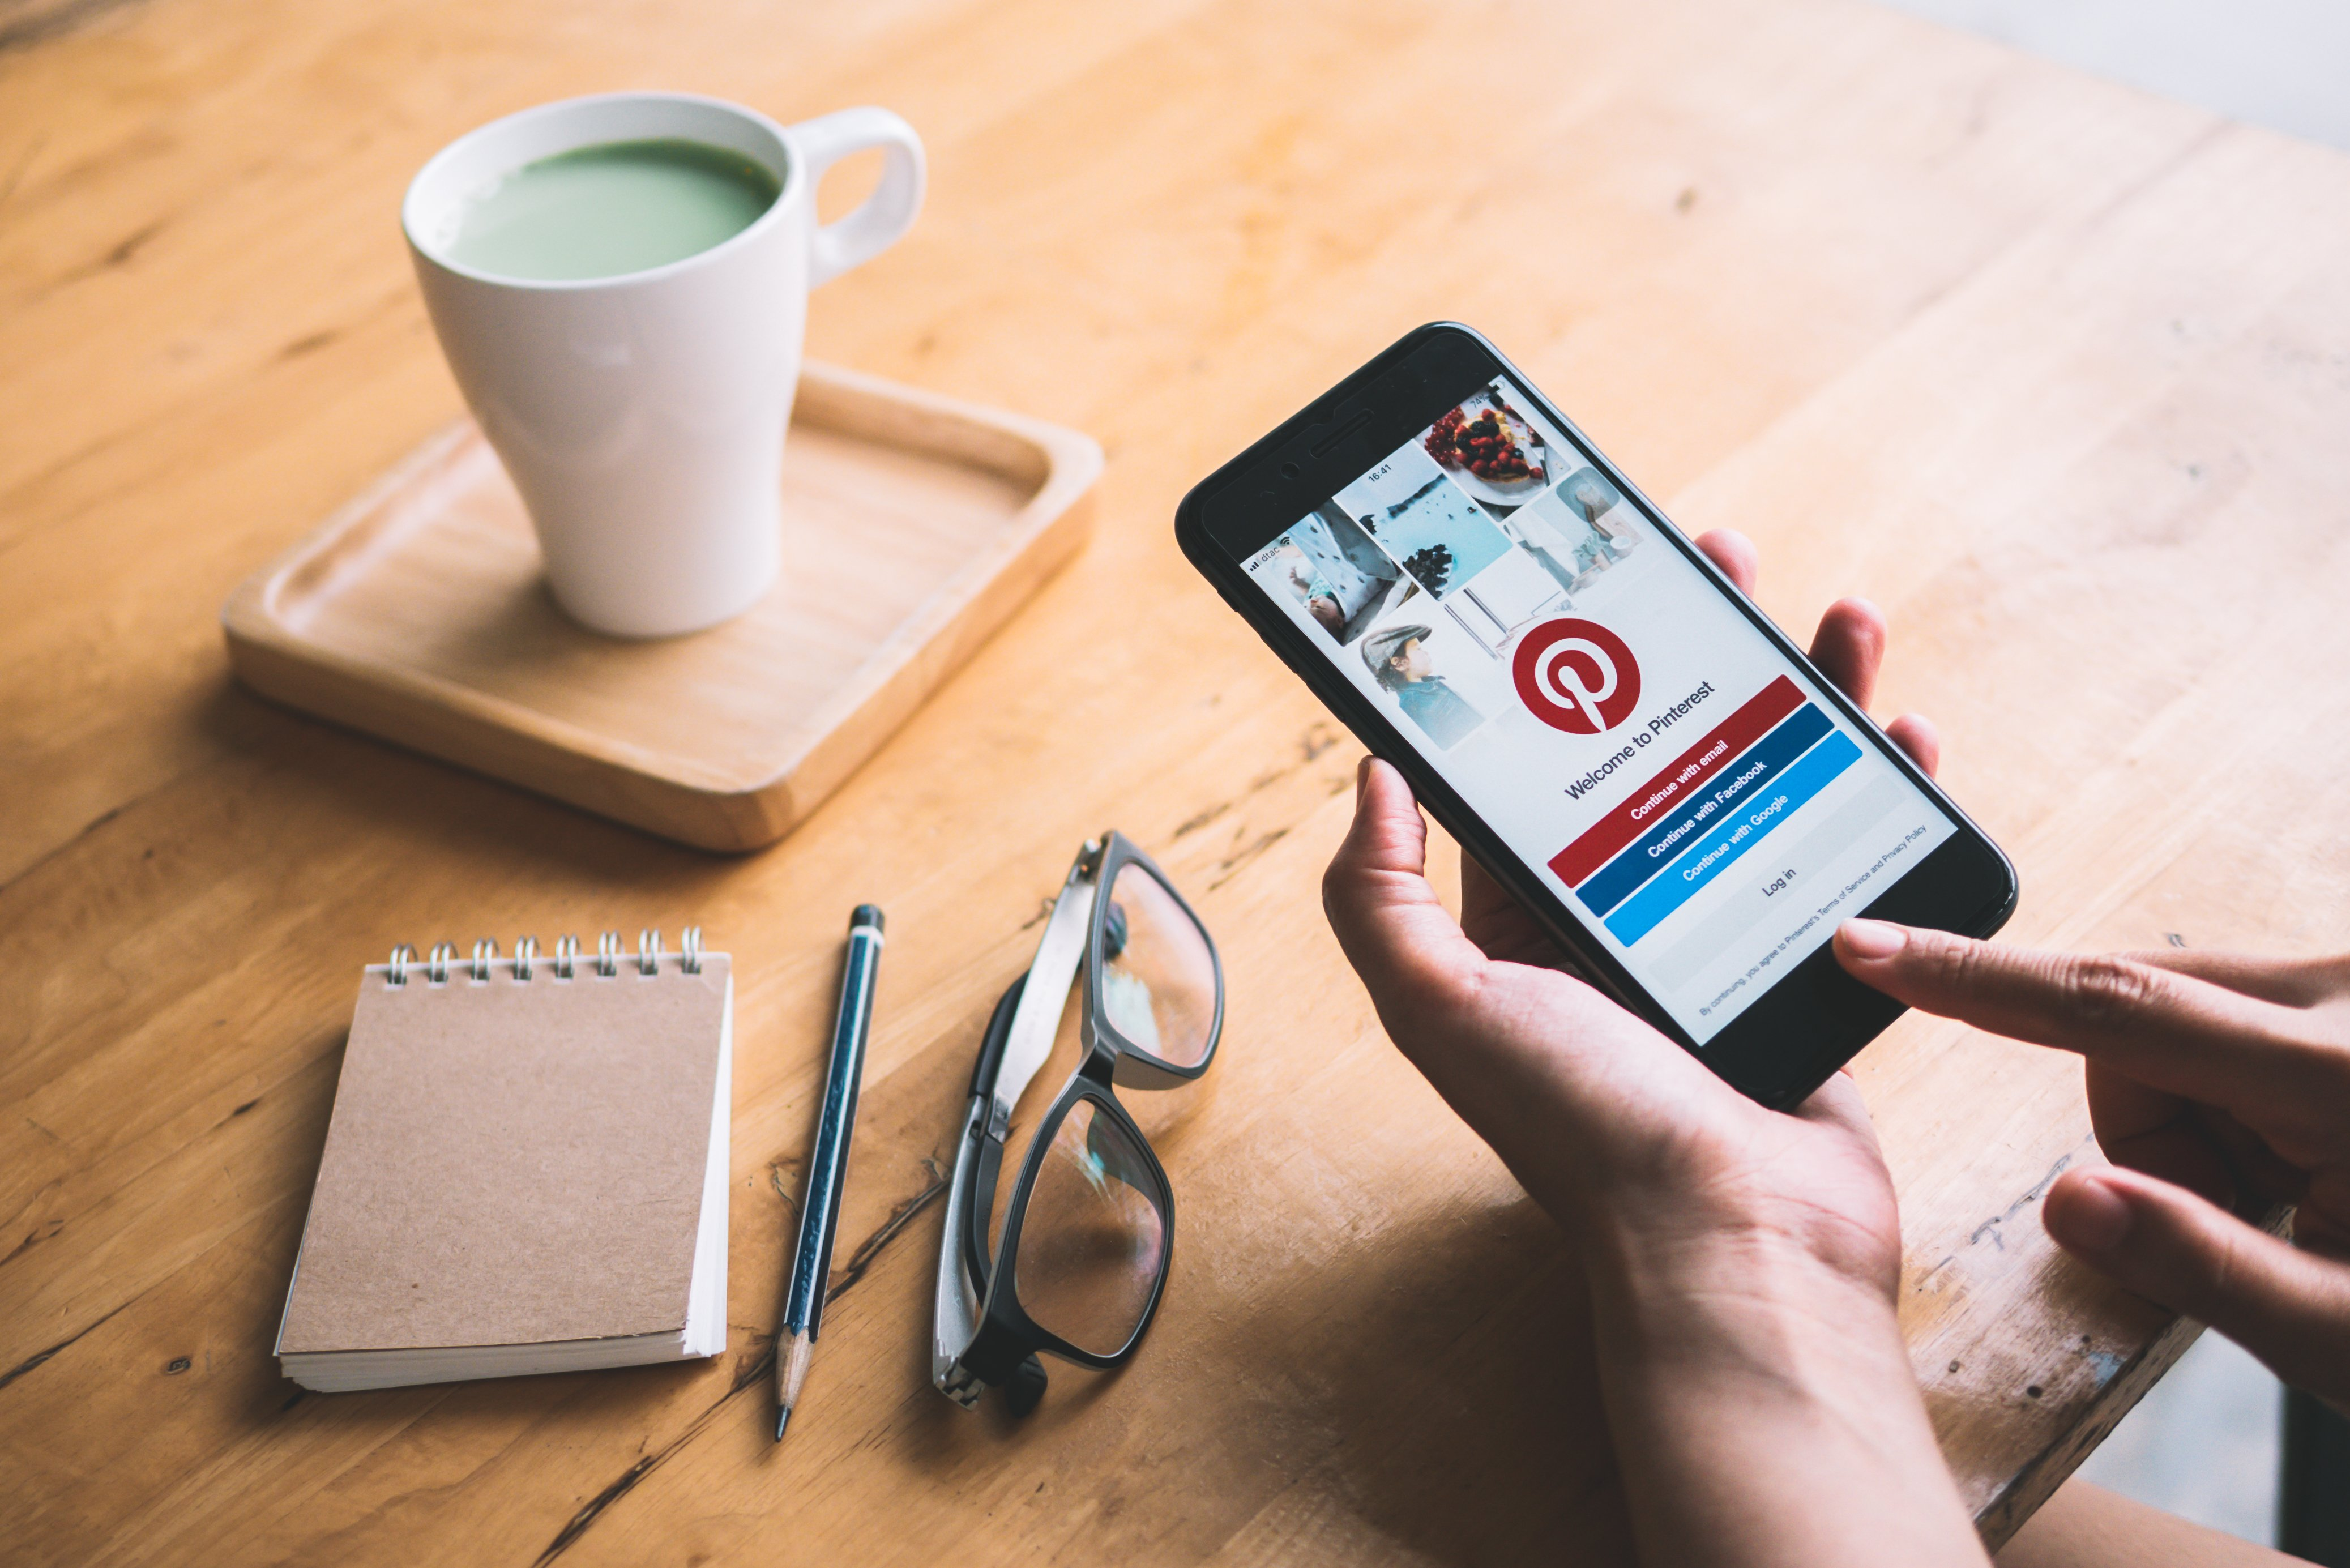 A Pinterest IPO Could Mean Good News For Users & Marketers